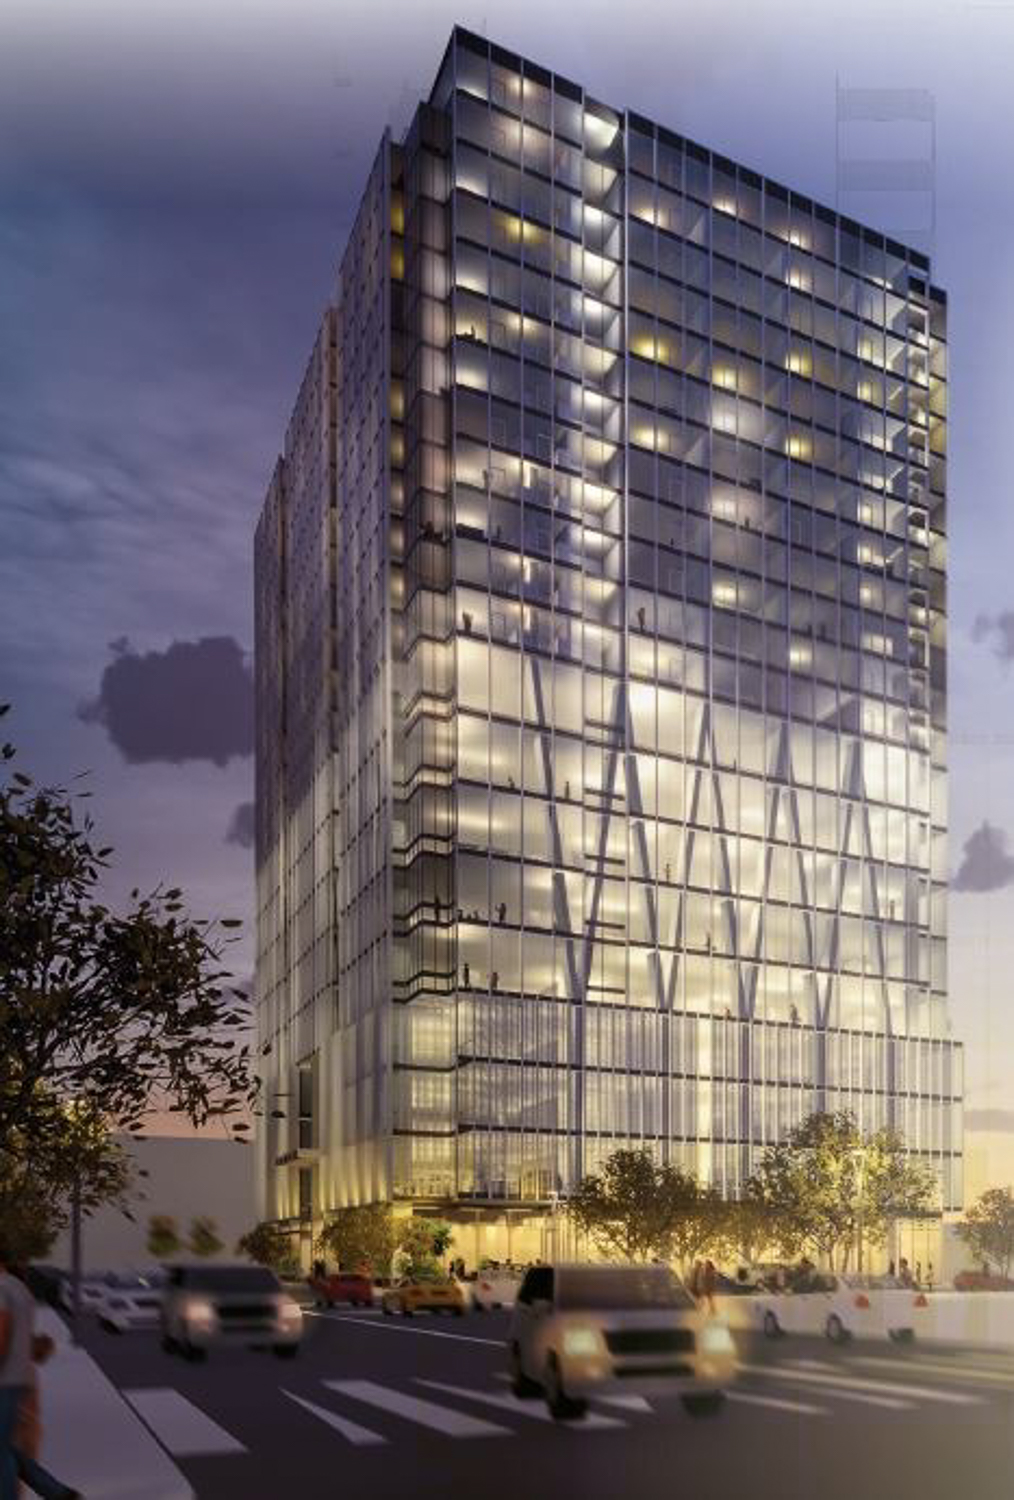 The Carlysle at 51 Notre Dame Avenue evening view, rendering courtesy CBRE and Acquity Realty